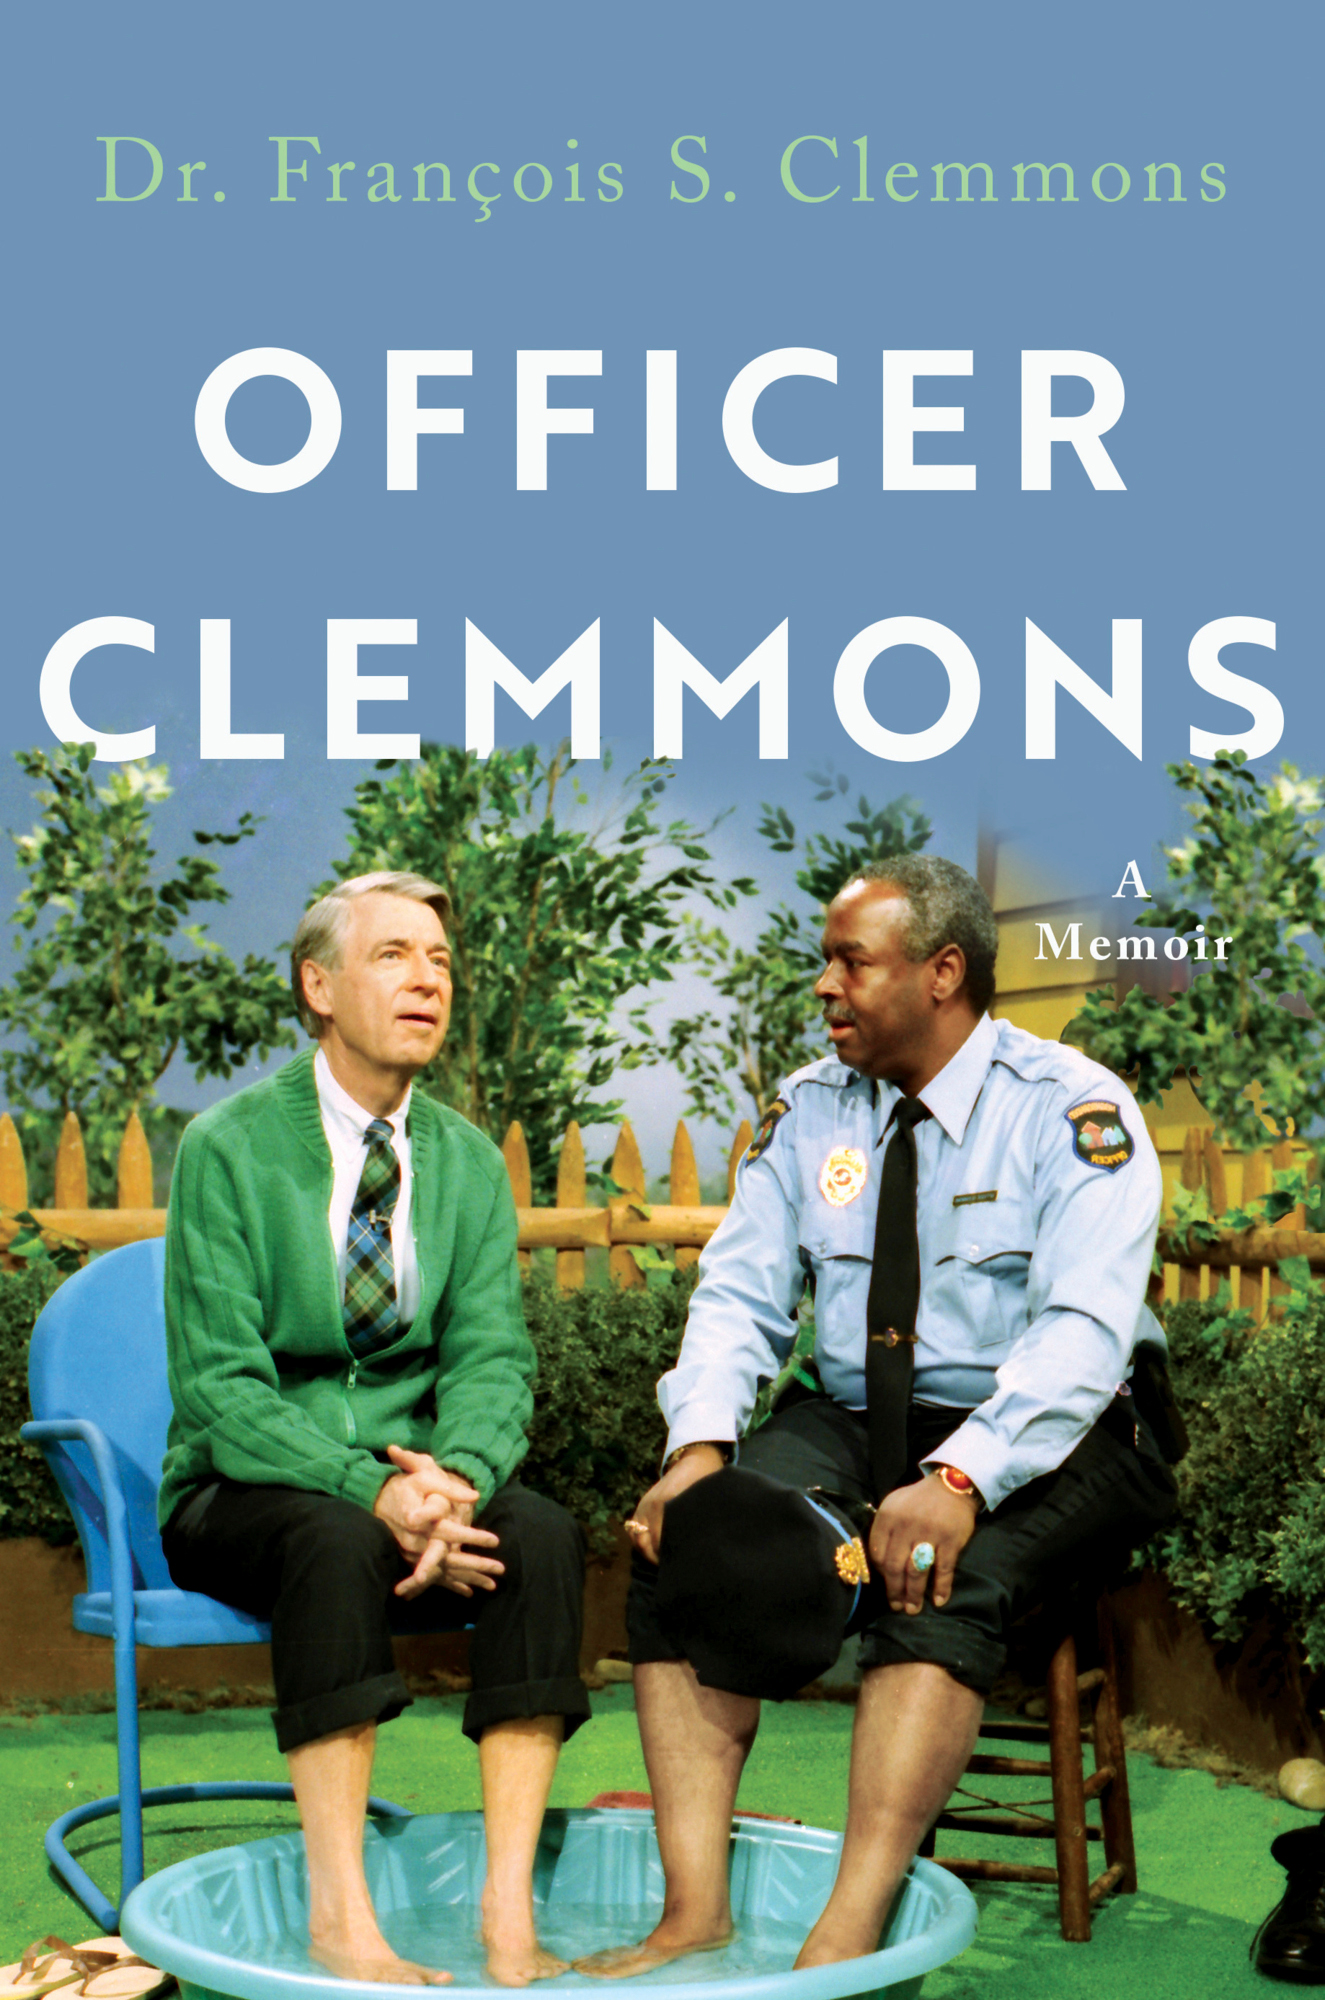 Mister Rogers Surprising Relationship With Gay Costar Officer Clemmons People Com